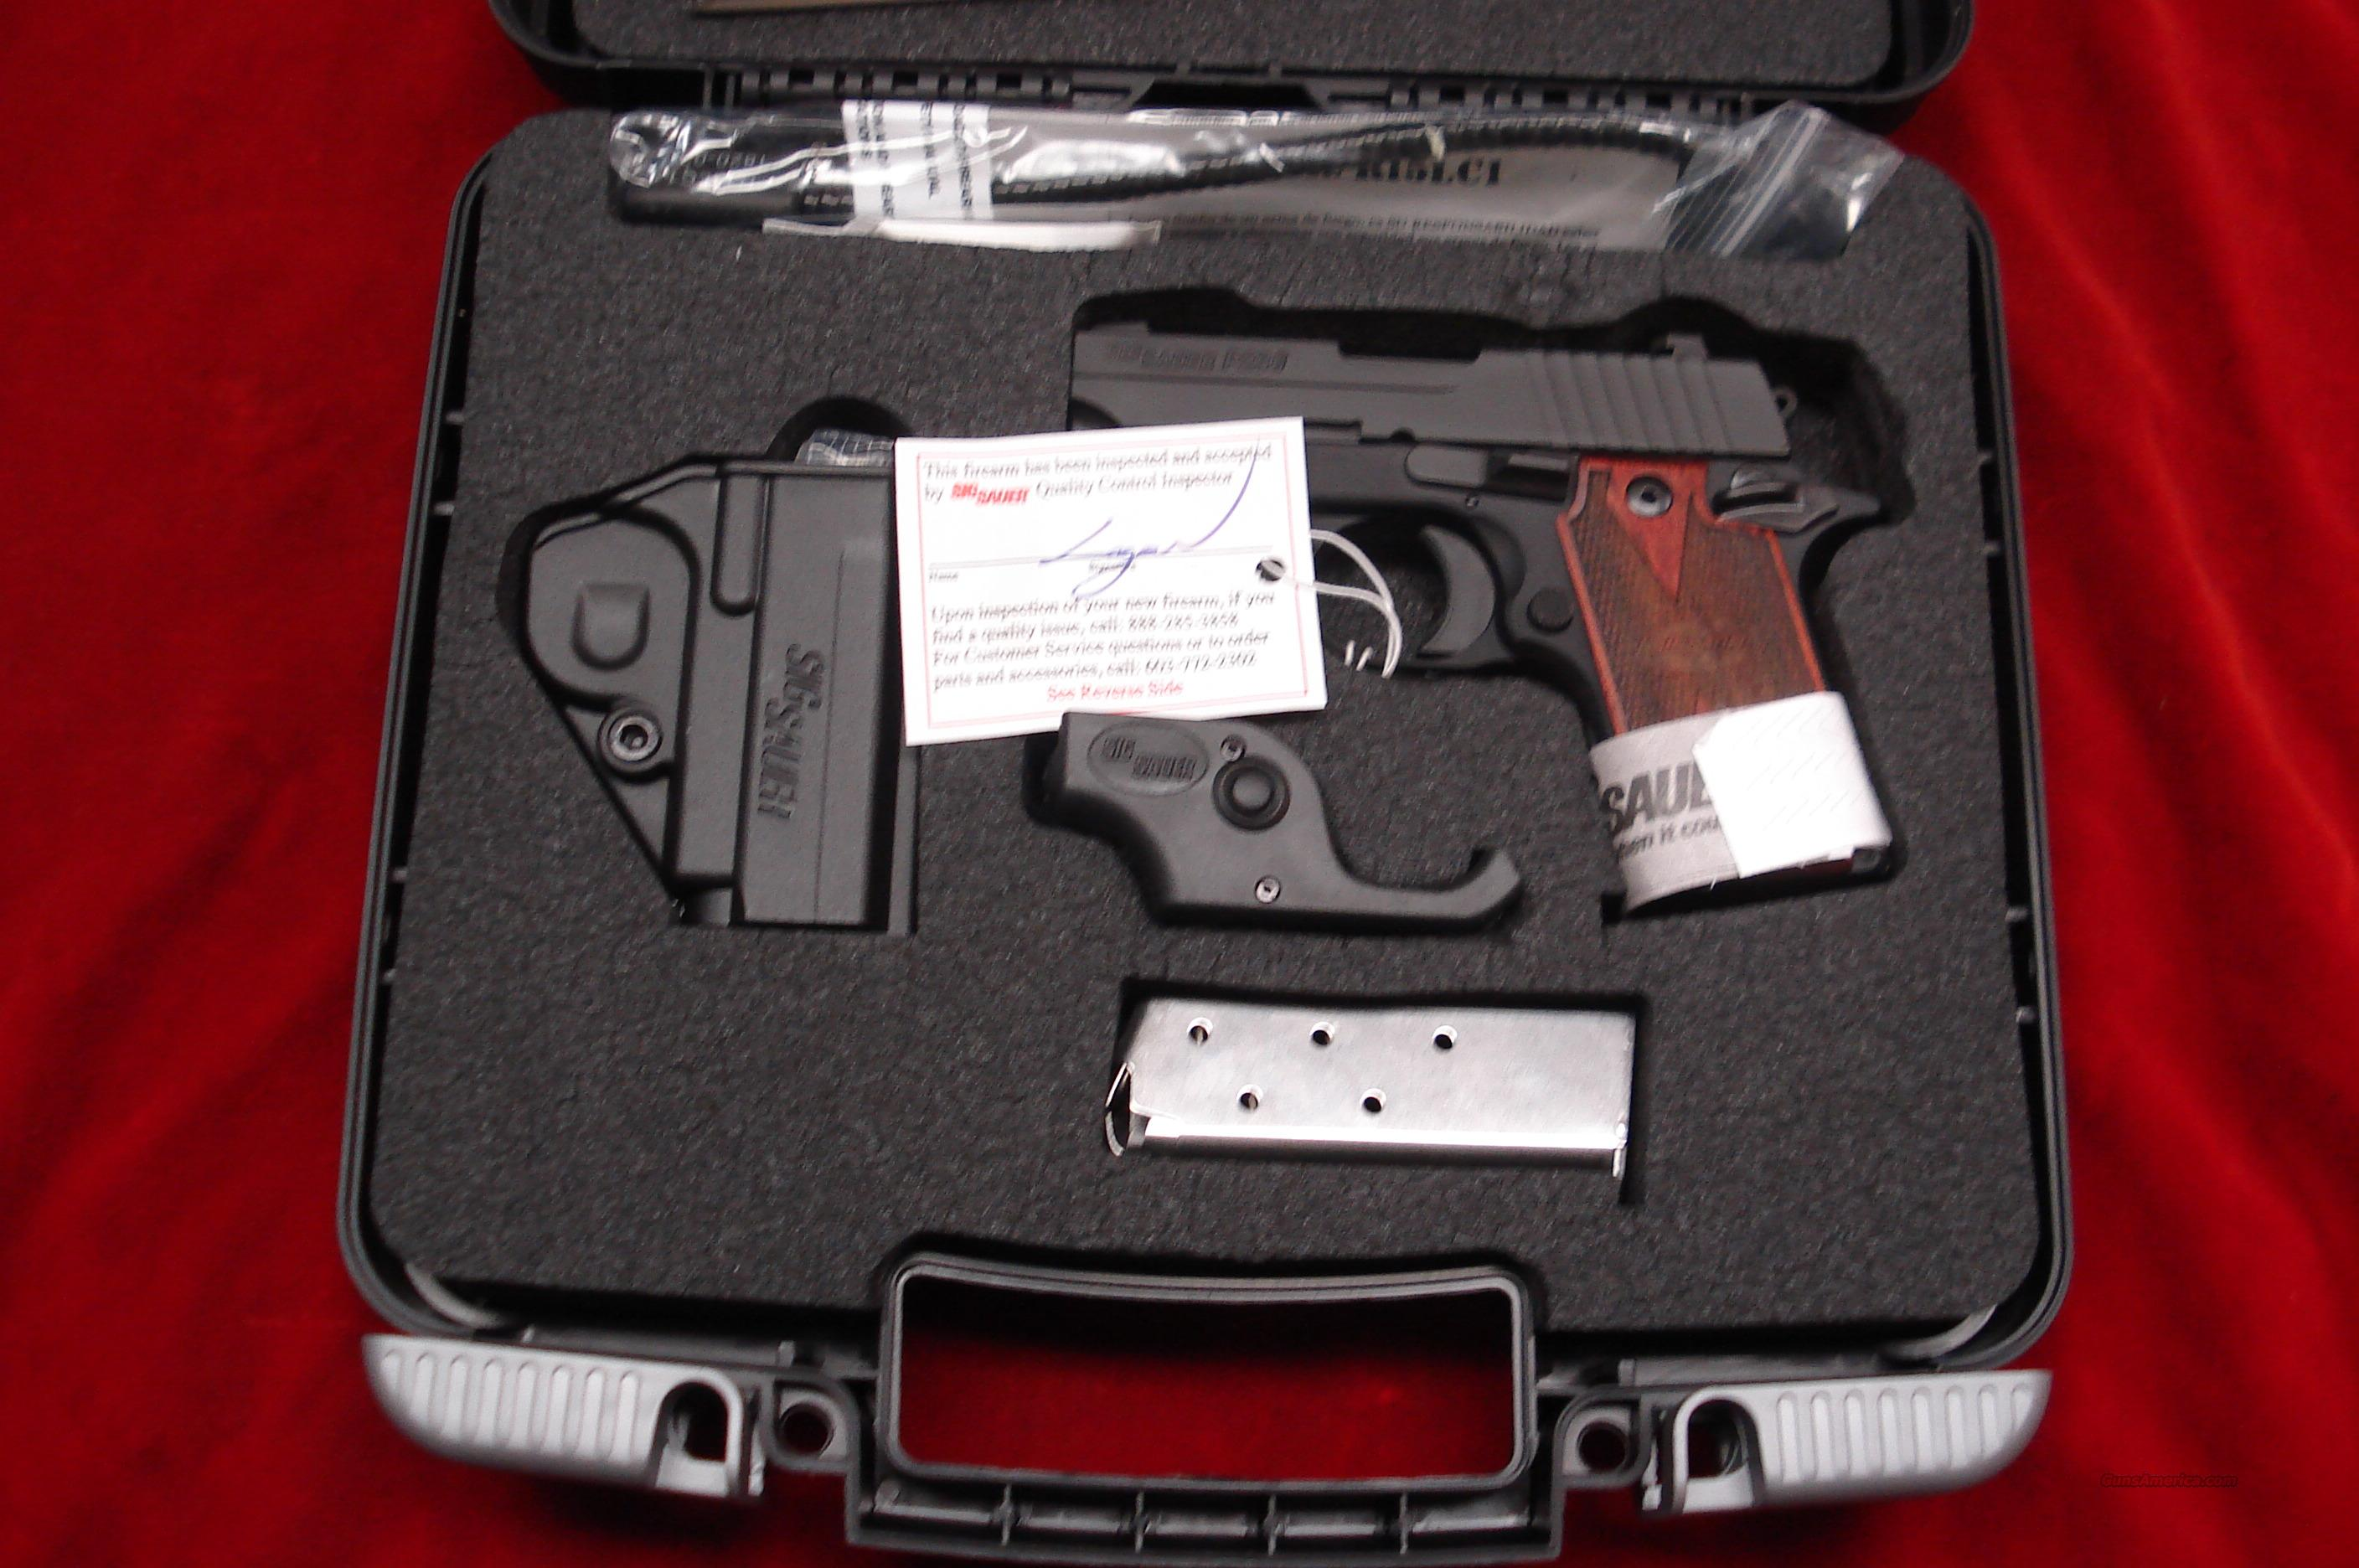 SIG P238 380CAL. W/FACTORY LASER,NIGHT SIGHTS AND ROSEWOOD GRIPS NEW   Guns > Pistols > Sig - Sauer/Sigarms Pistols > P238